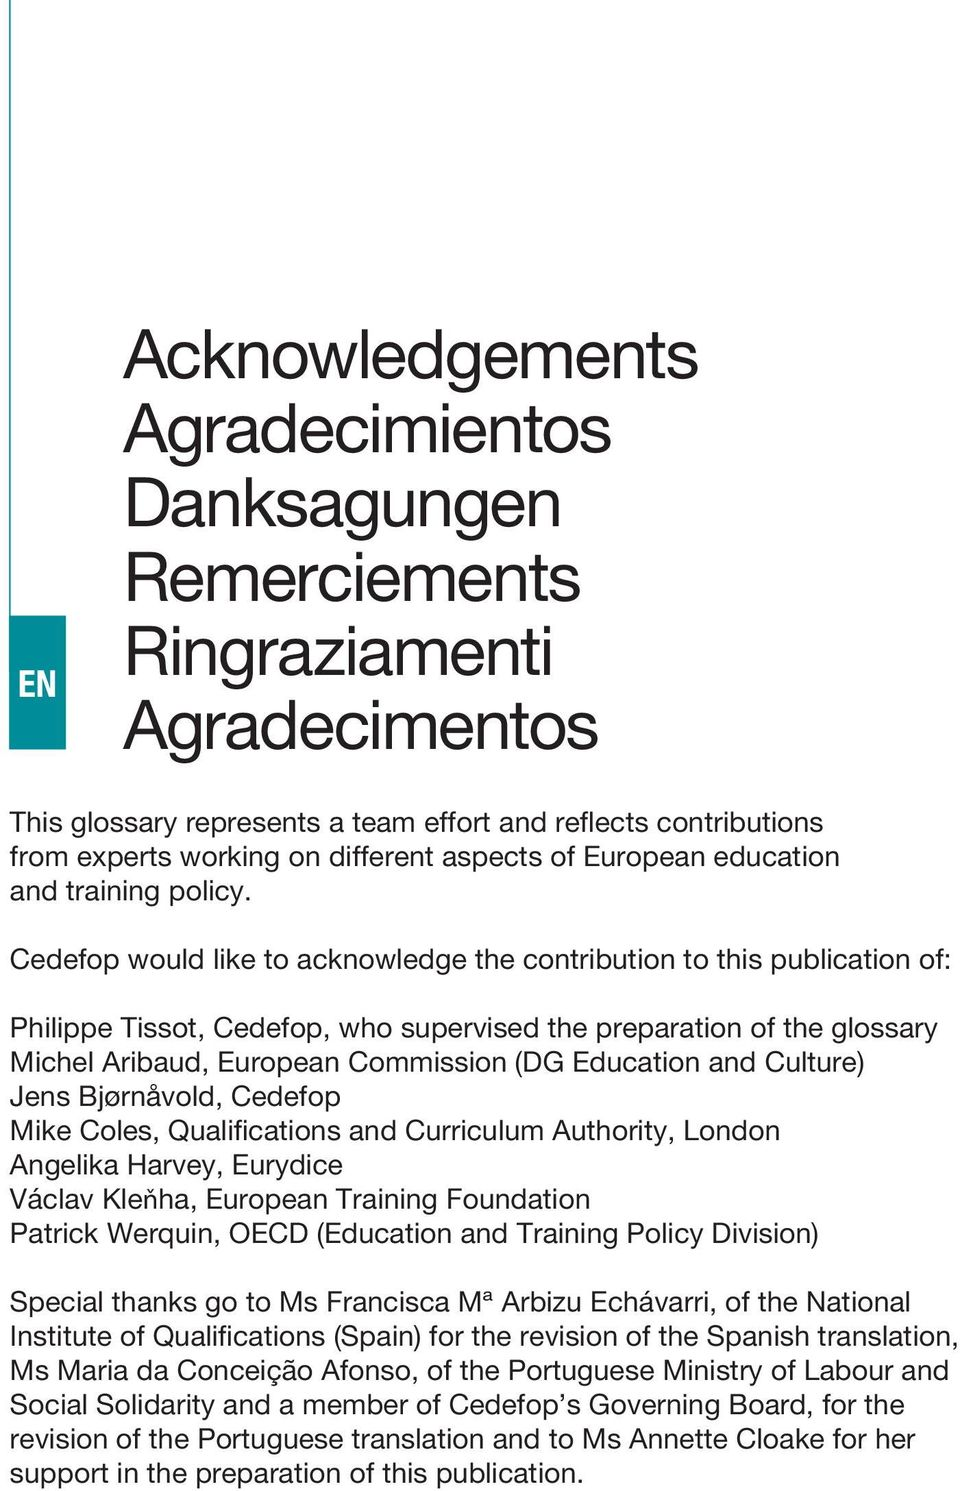 Cedefop would like to acknowledge the contribution to this publication of: Philippe Tissot, Cedefop, who supervised the preparation of the glossary Michel Aribaud, European Commission (DG Education